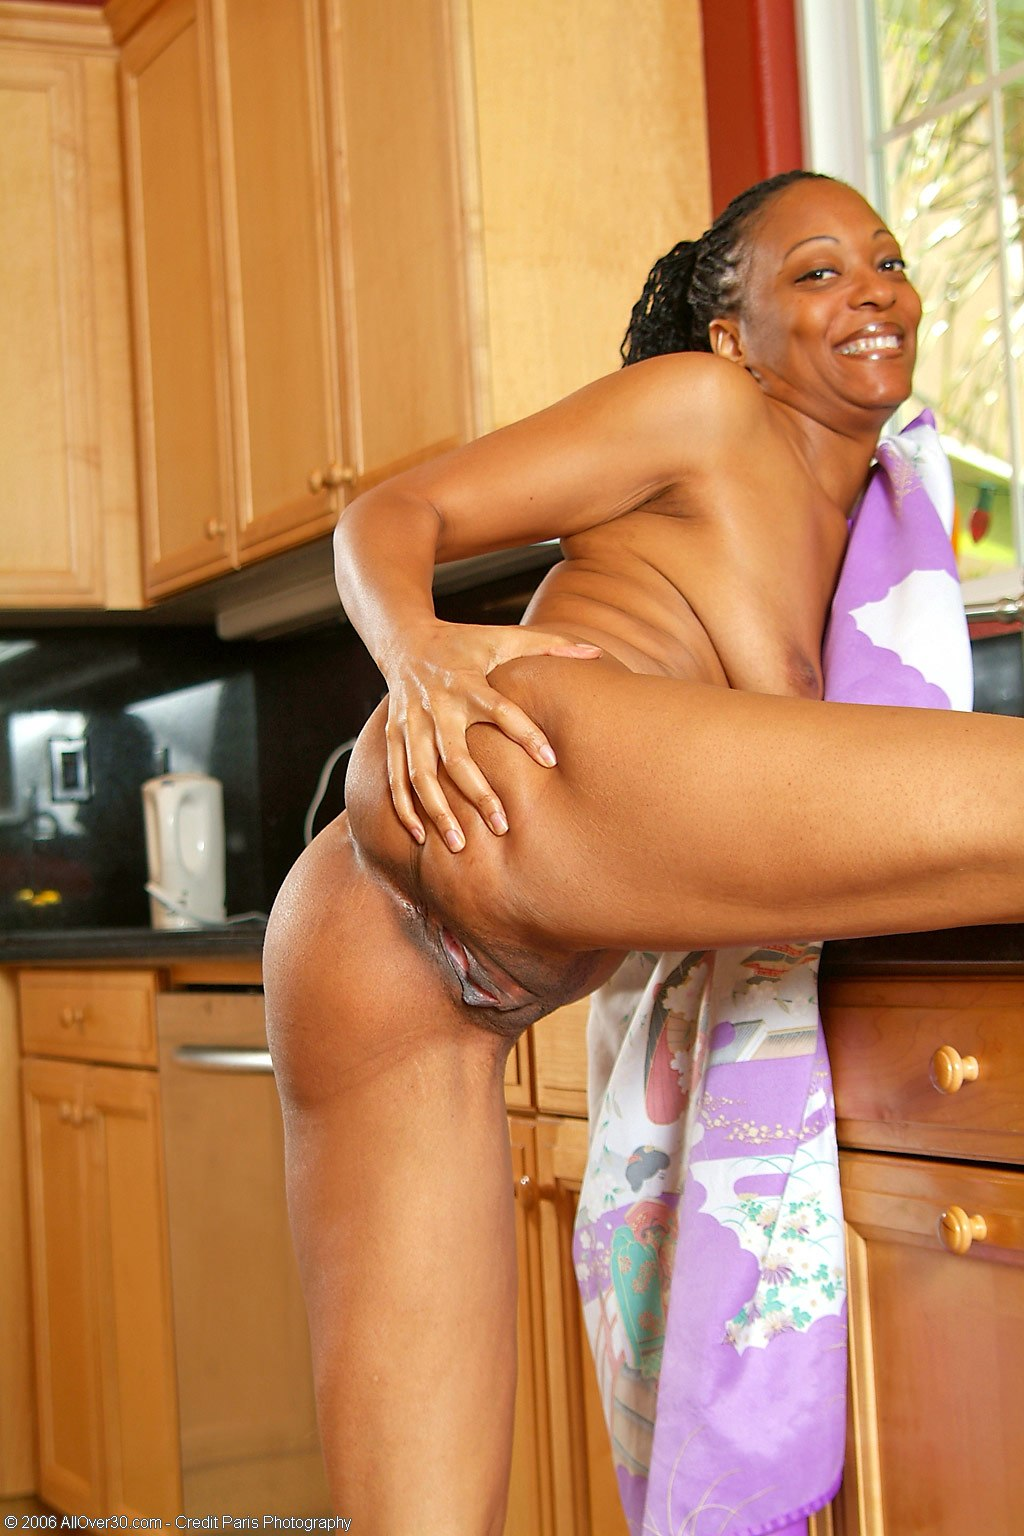 Milf black women with glasses